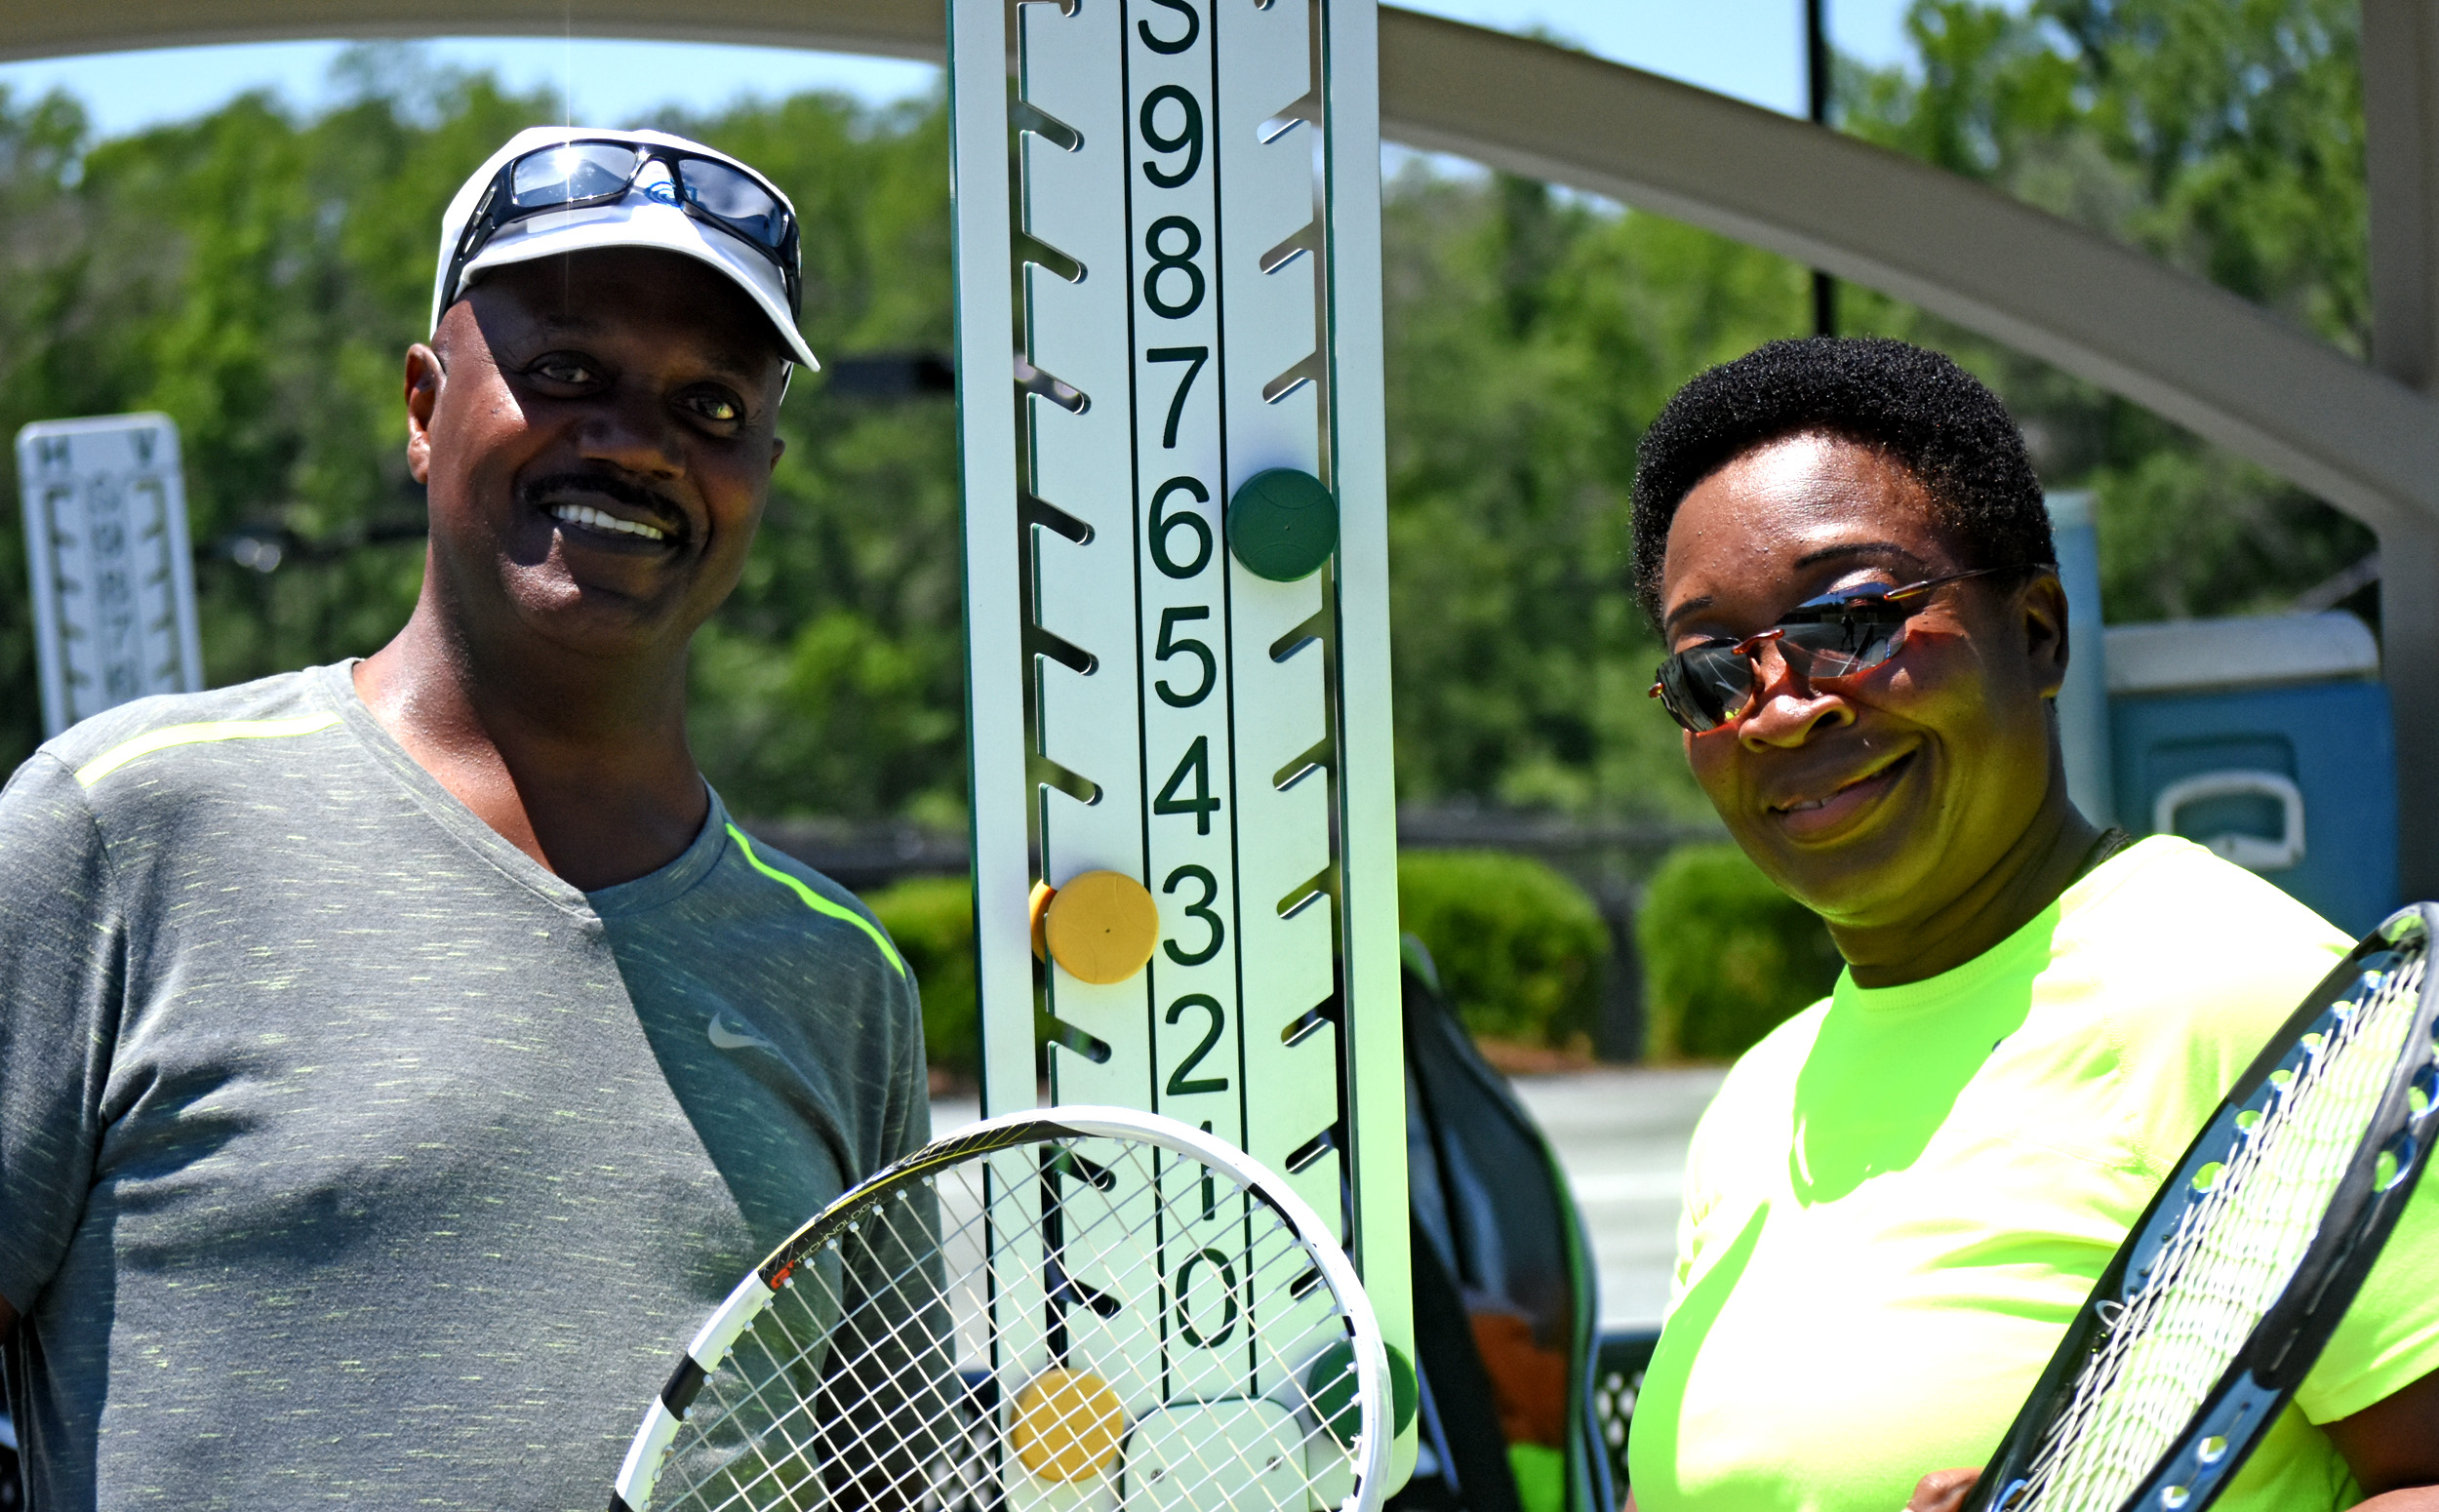 Earl and Betty Austin train at Pelham Racquet Club. The Pelham couple – he's 68 and she's 66 – will play mixed doubles in the National Senior Games in Birmingham. (Solomon Crenshaw Jr./For The Birmingham Times).